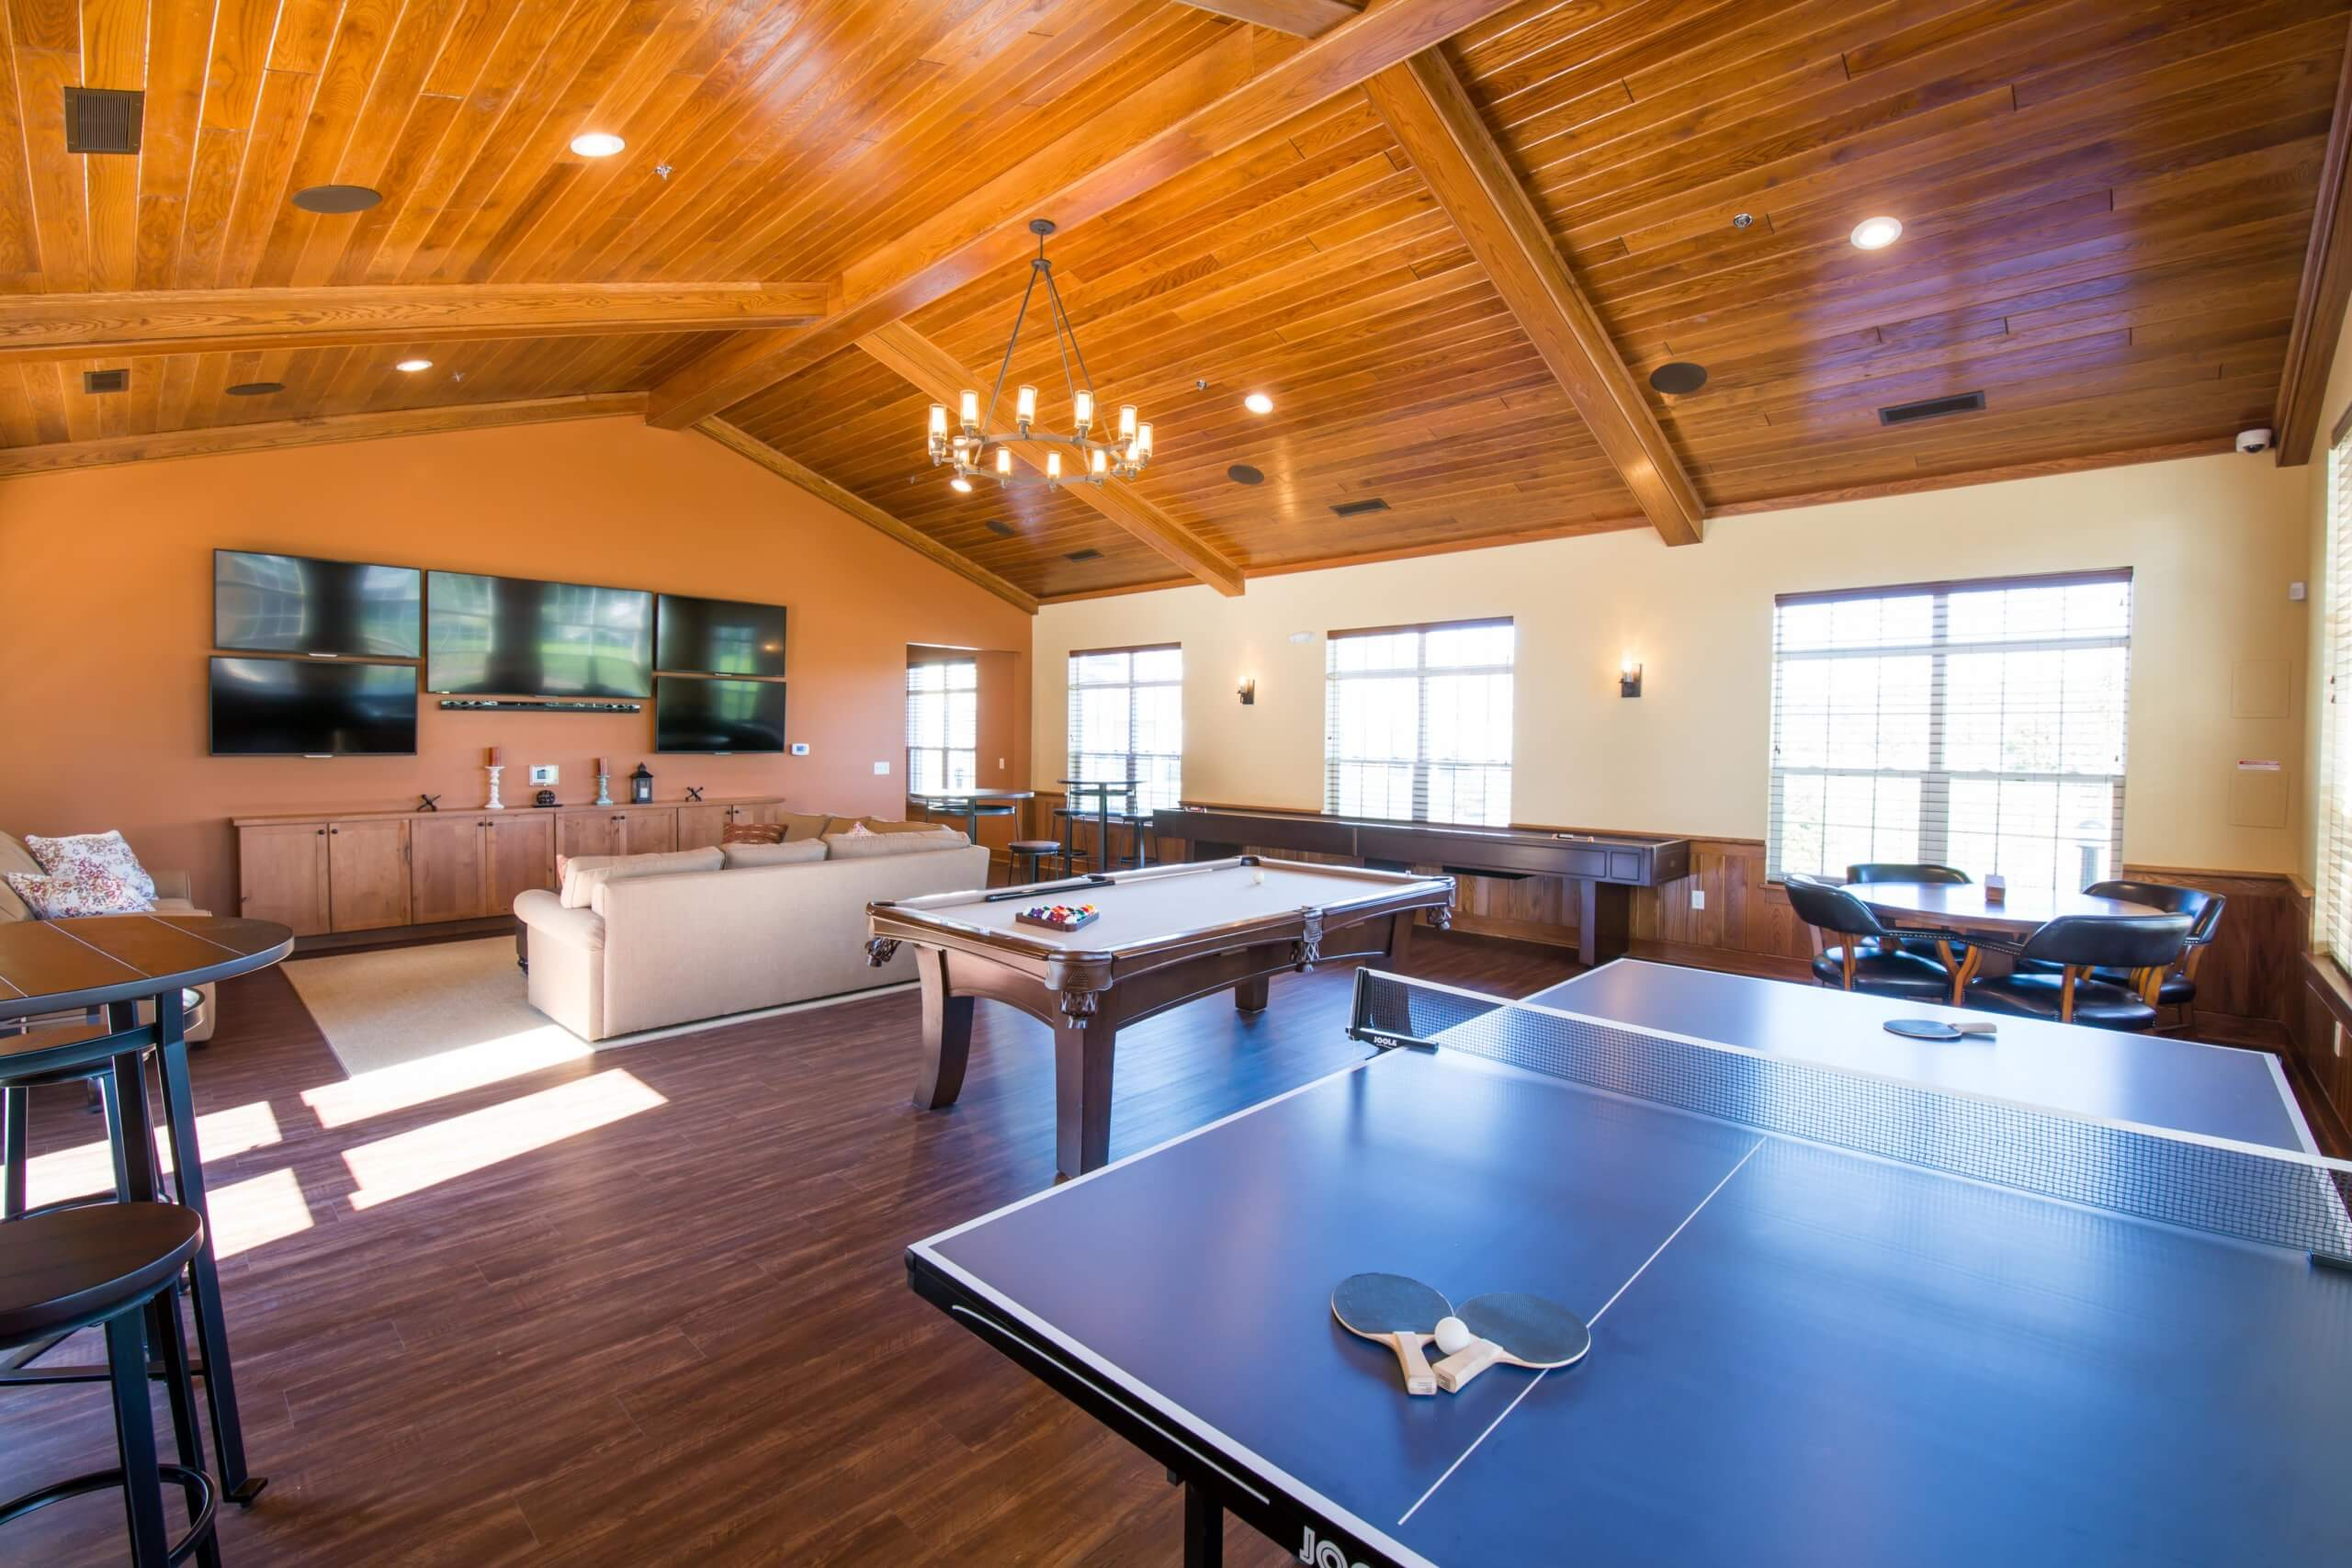 clubhouse with pool table and ping pong table